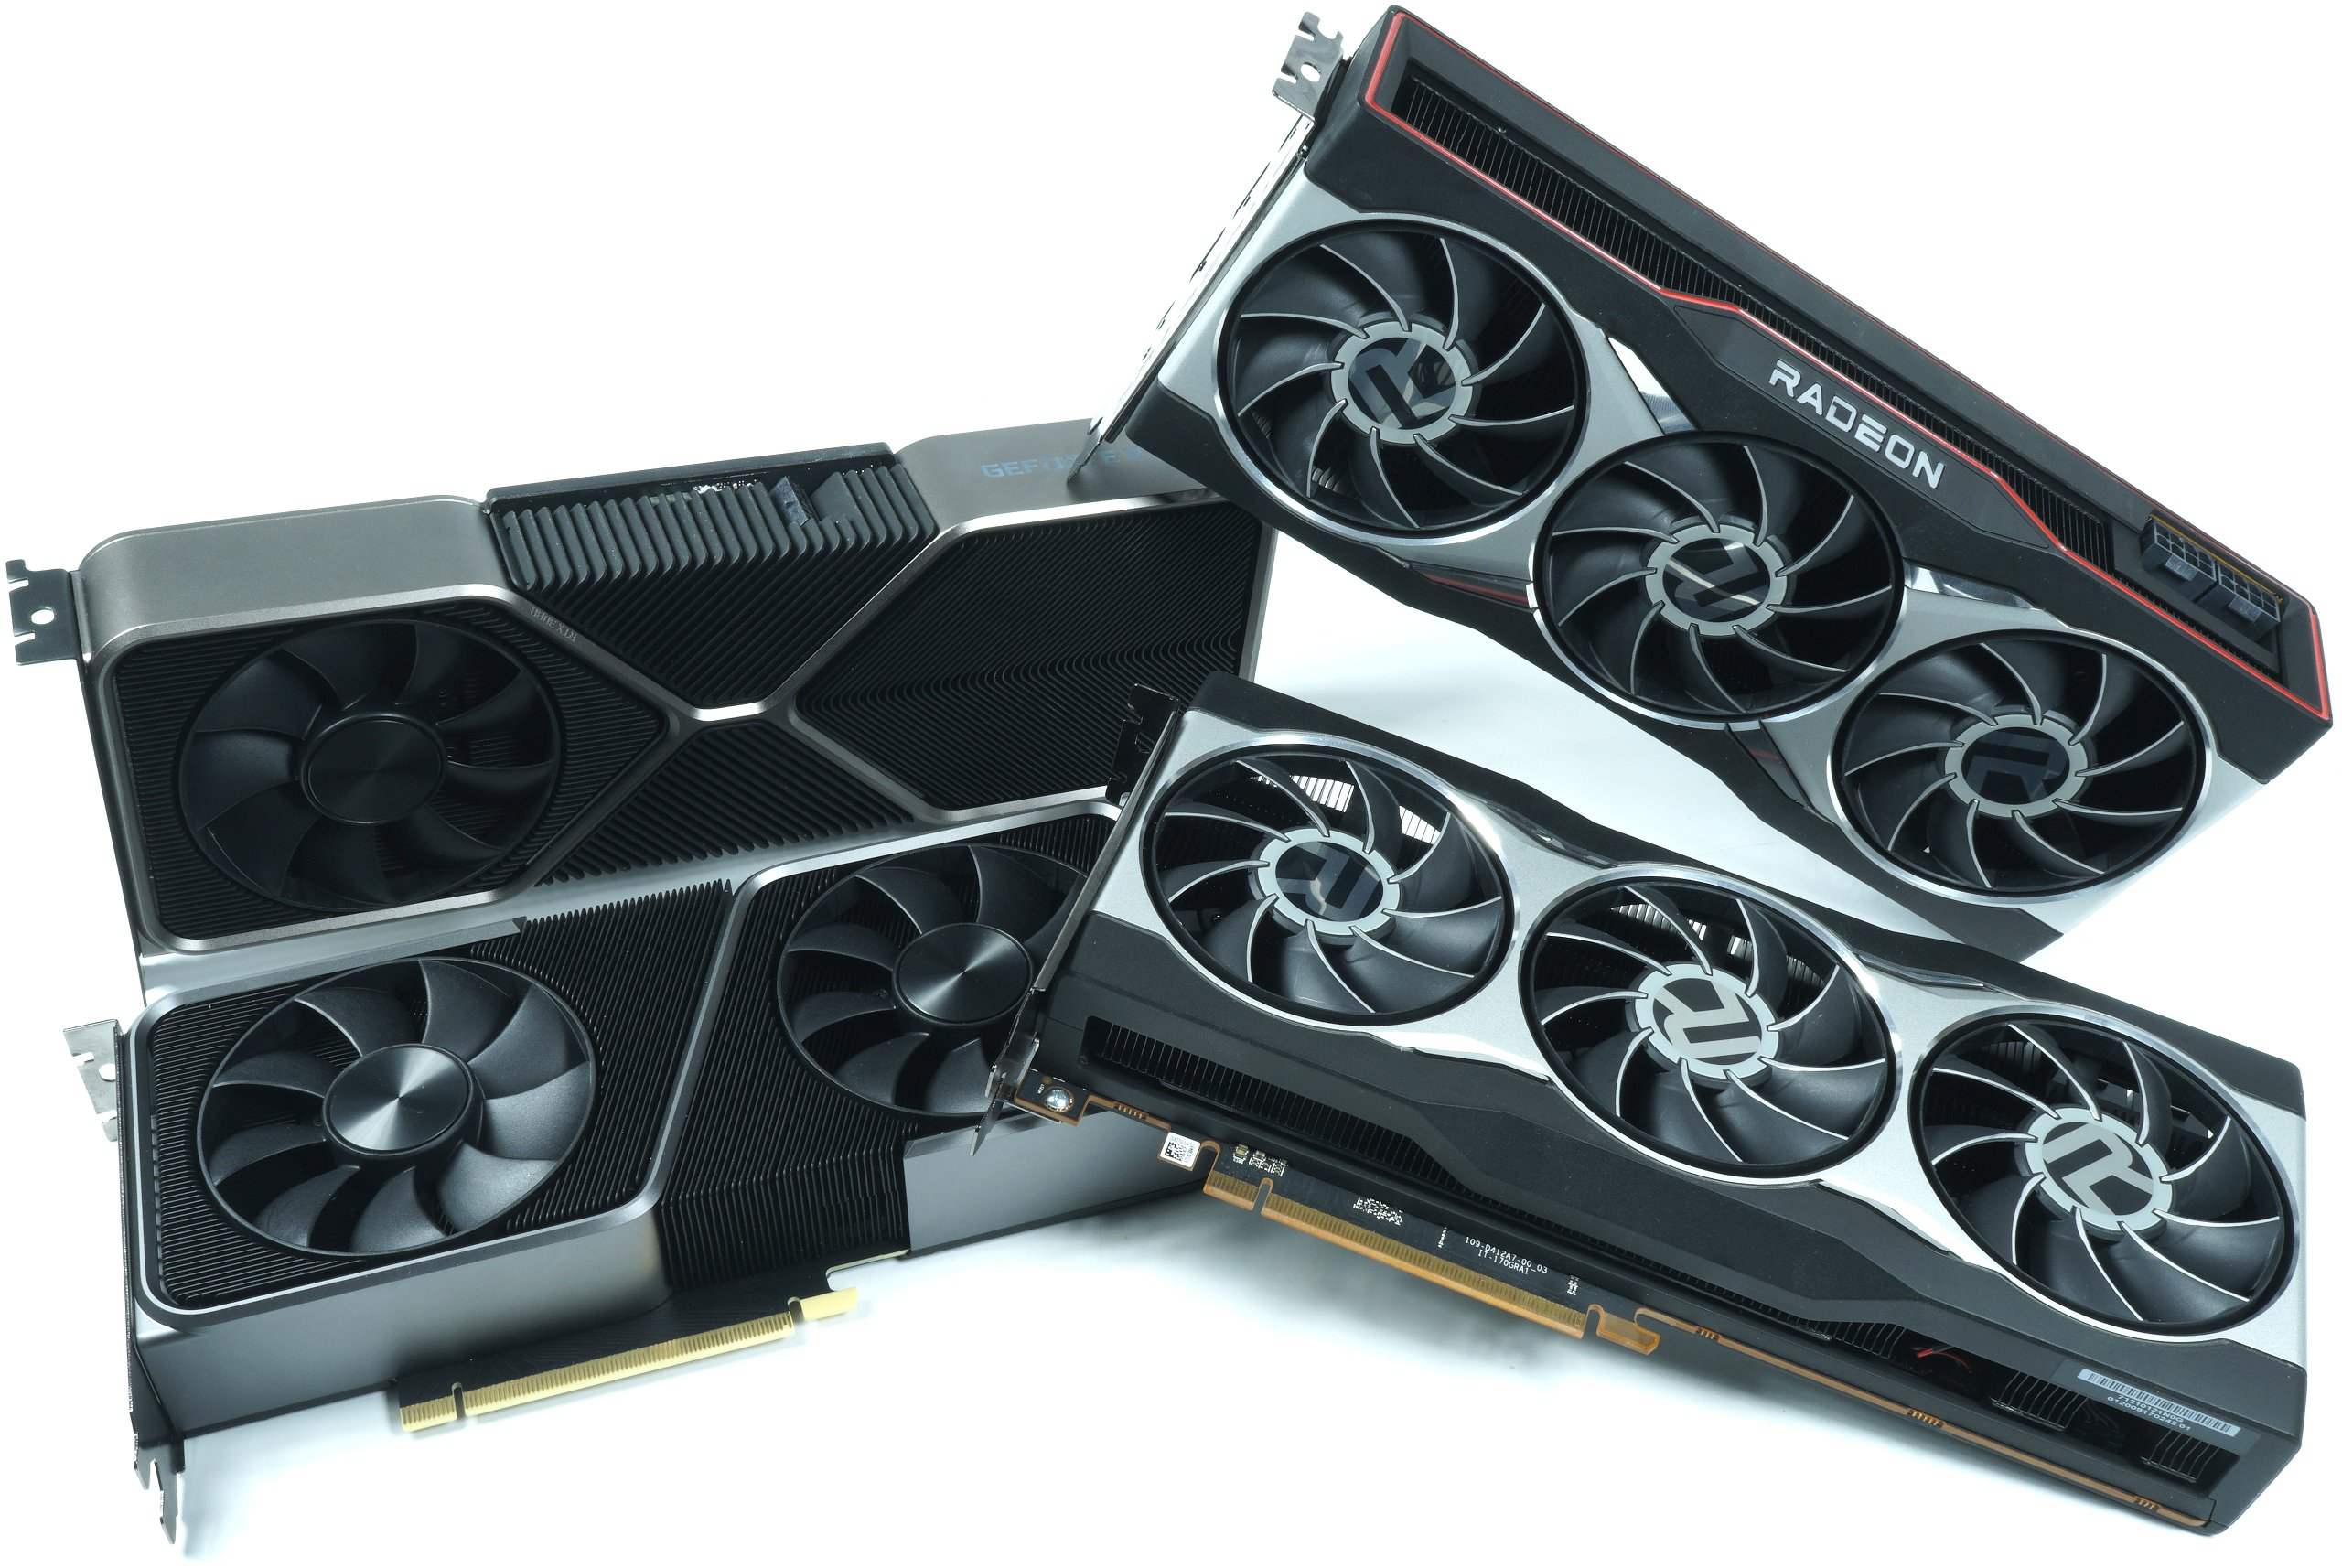 The Geforce Rtx 3080 Ti Comes Later The Rtx 3060 Earlier And The Gtx 1060 3gb Gets A Nice Successor Exclusive Igor Slab